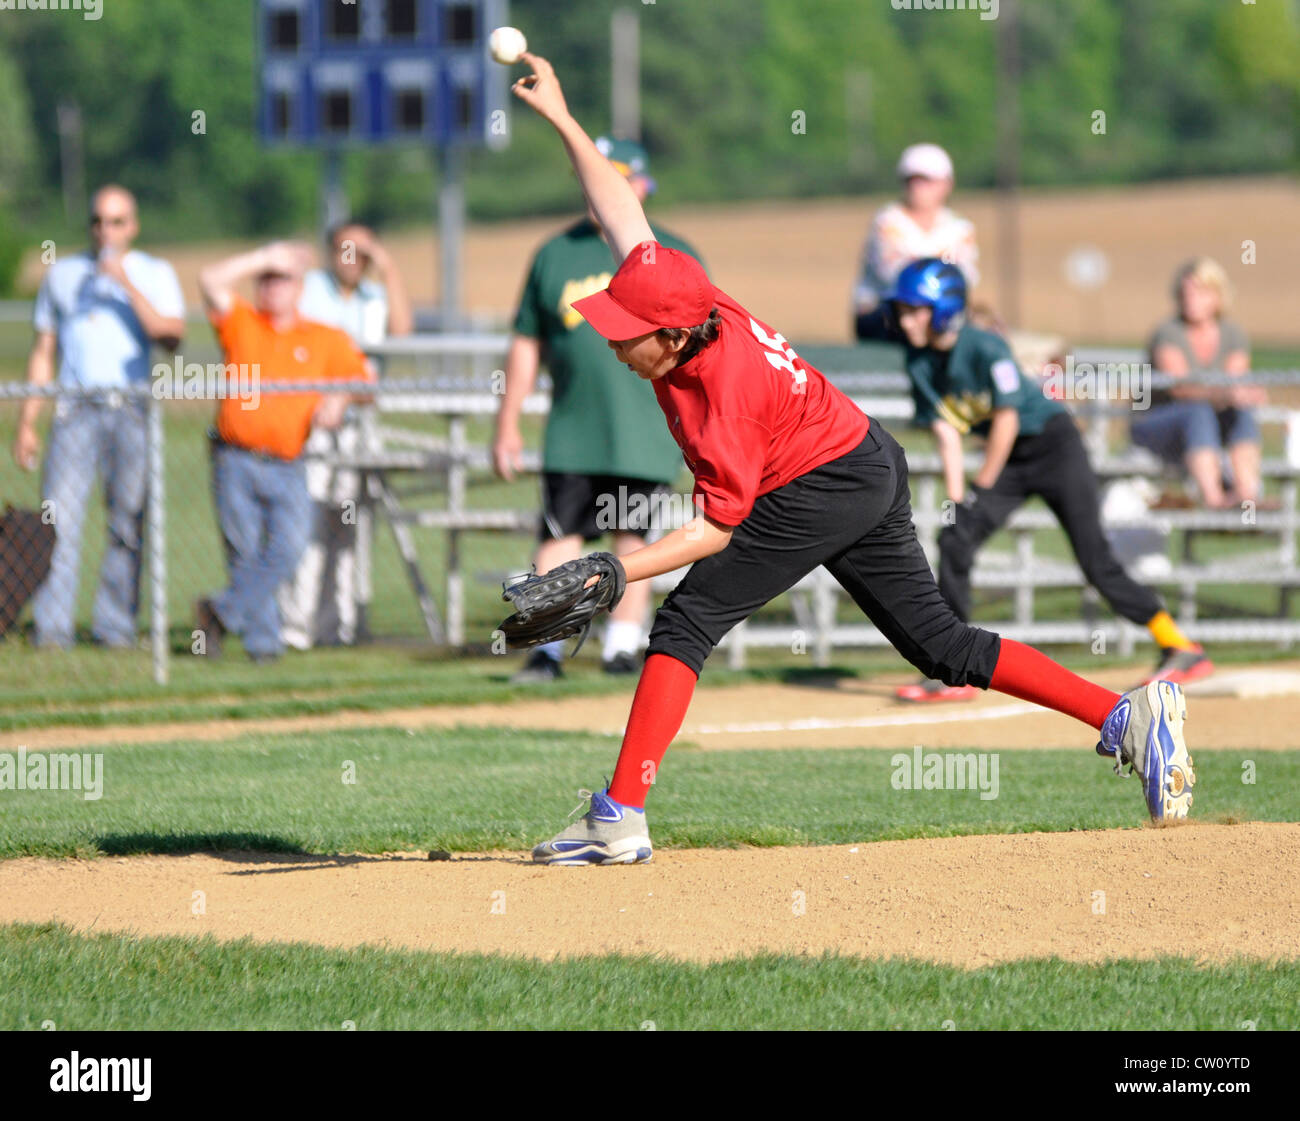 right handed little league baseball pitcher throwing the ball from the pitcher's mound - Stock Image